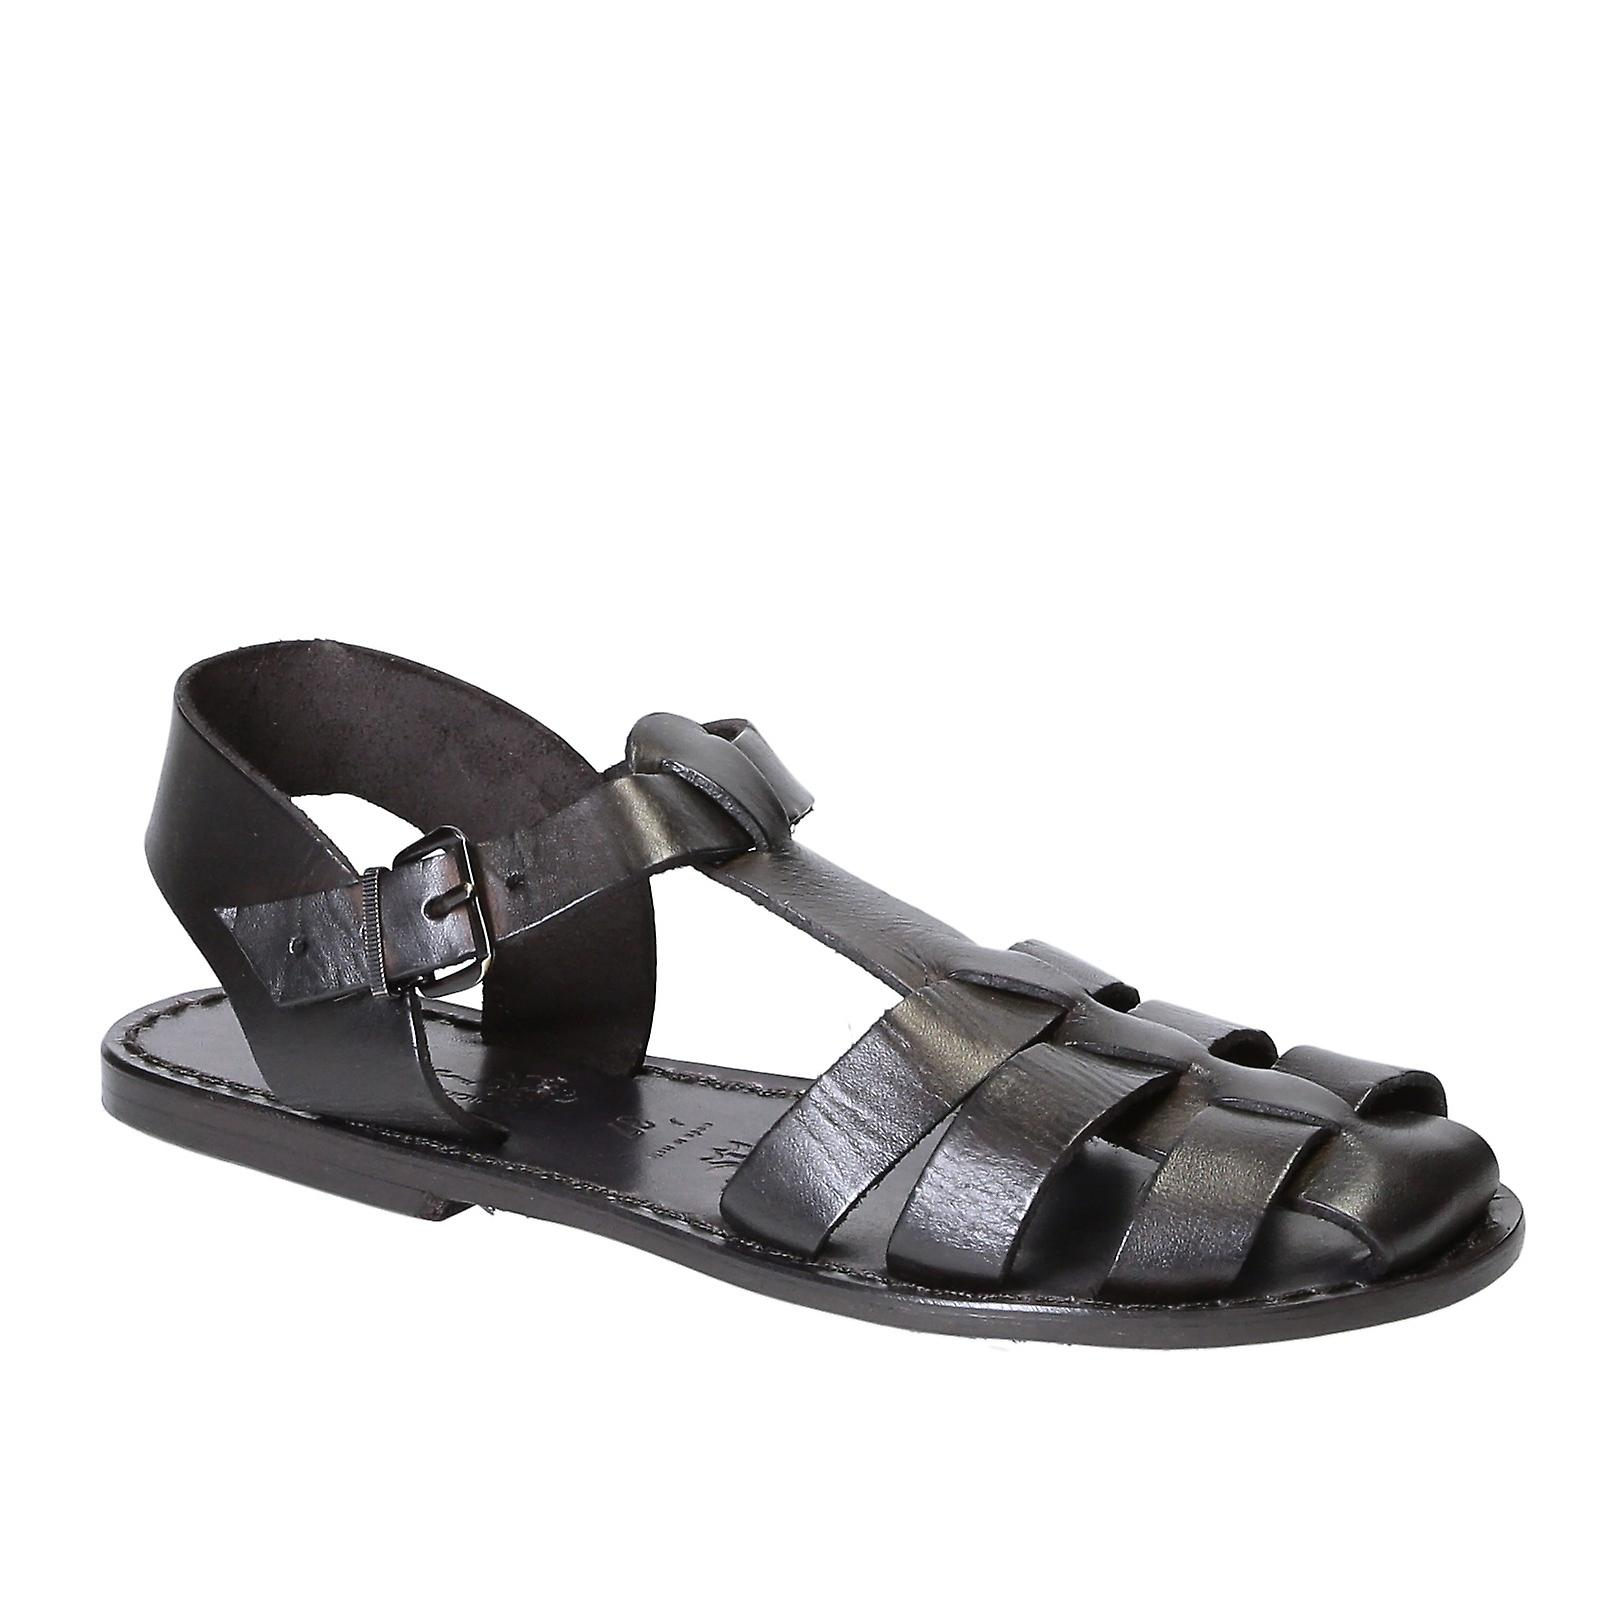 Black flat sandals for women real leather Handmade in Italy LnlMy